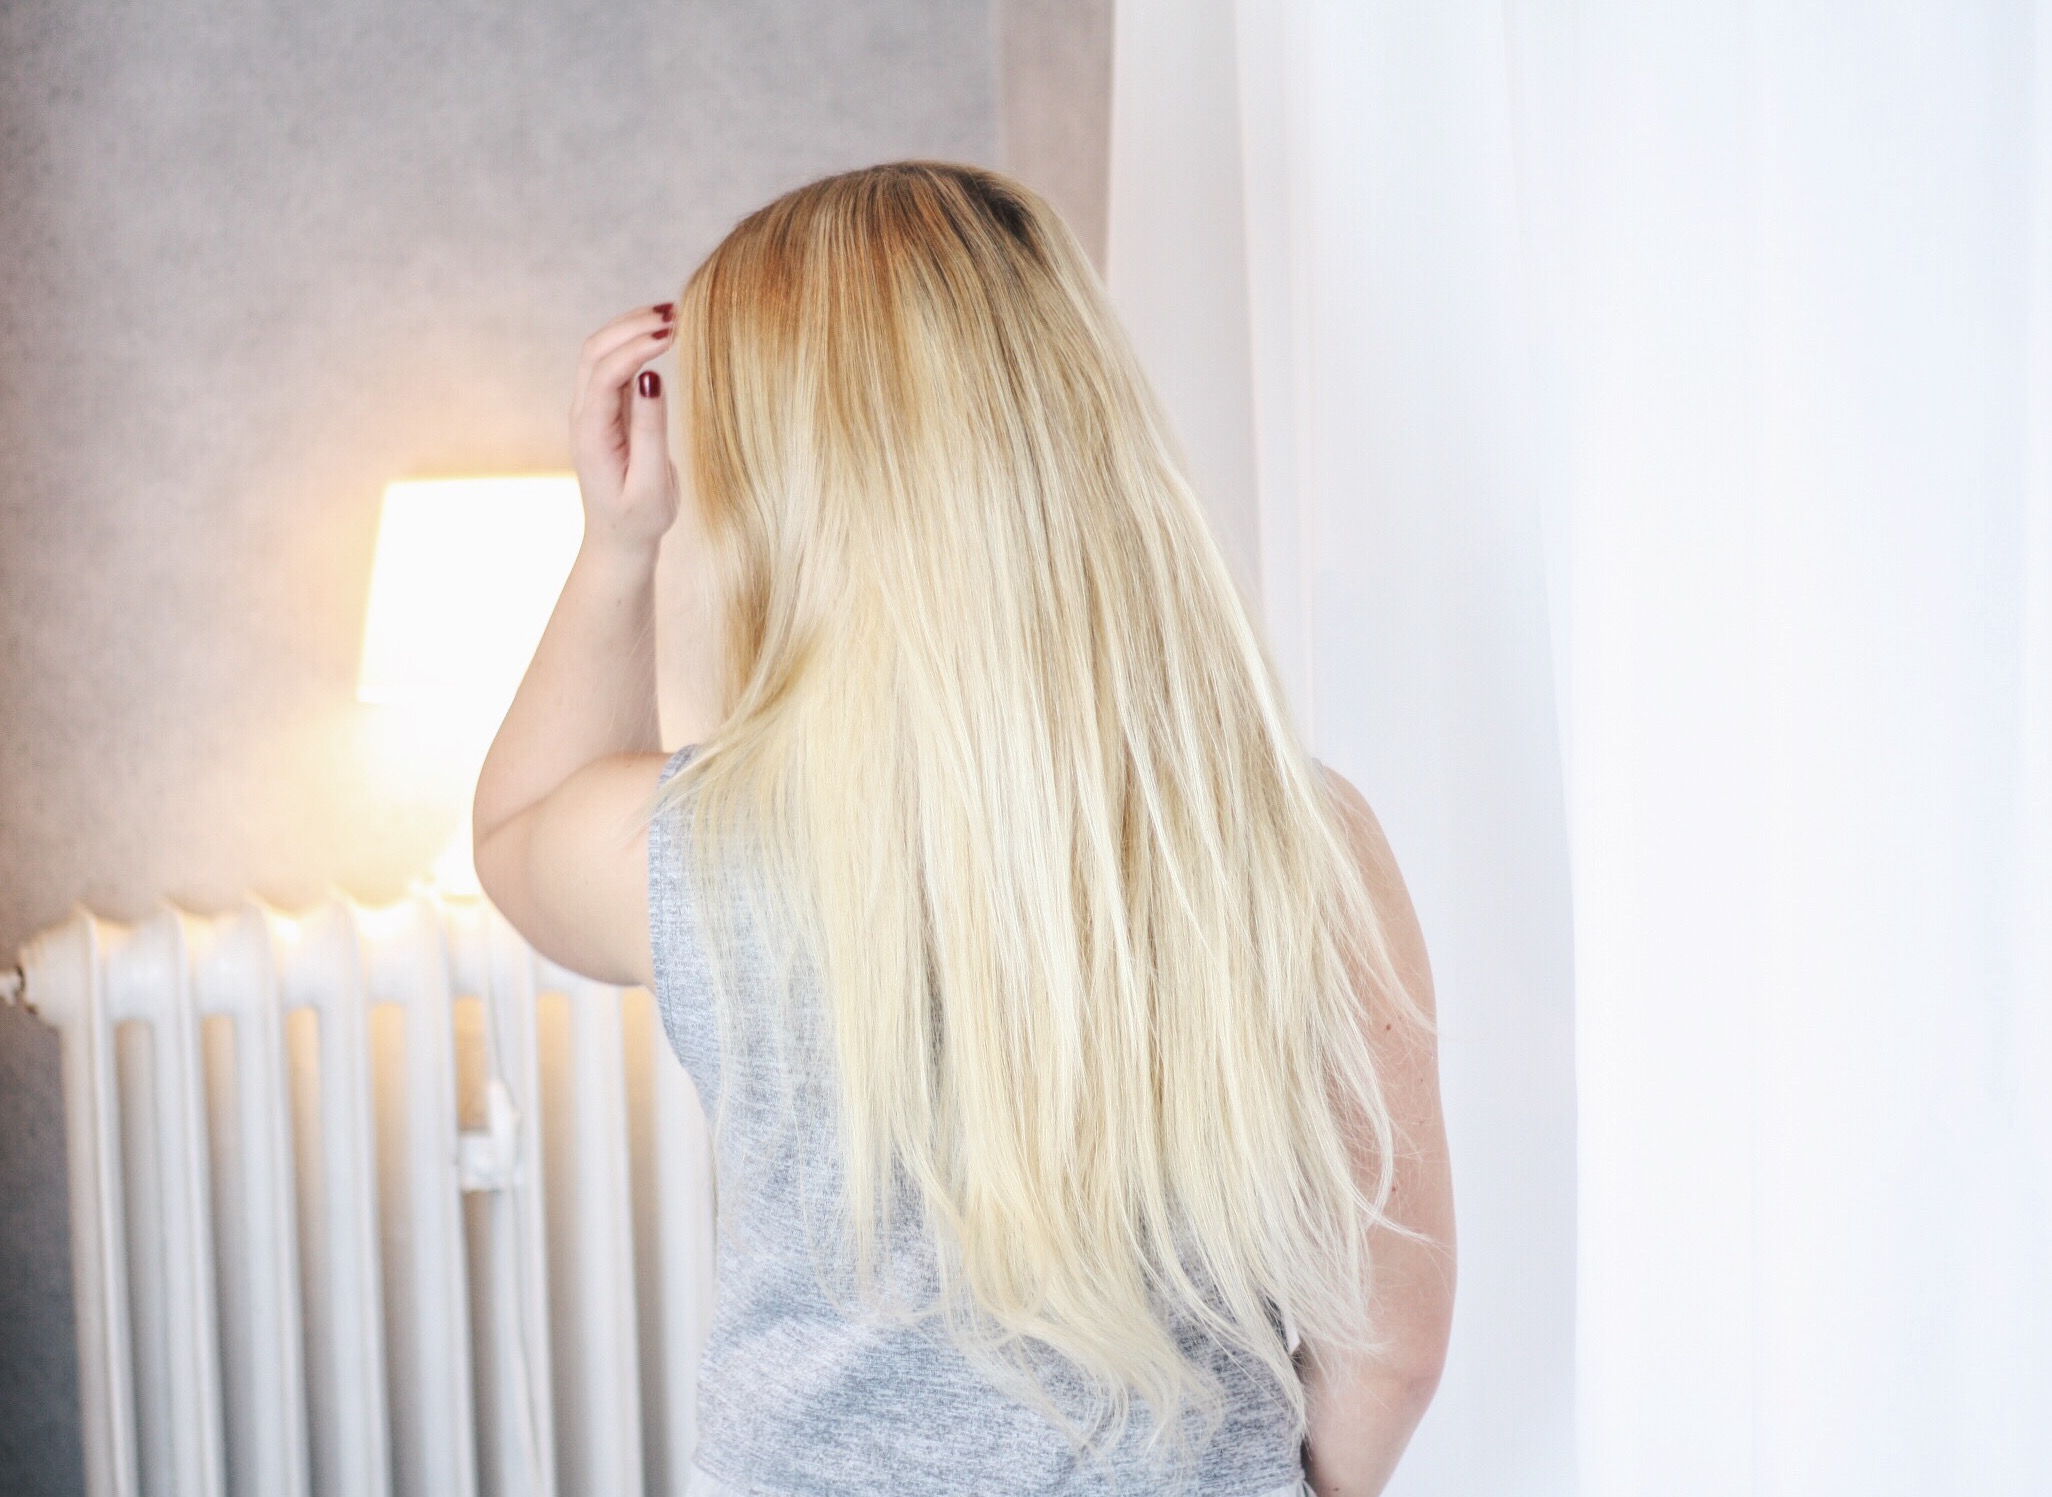 clip-in_extensions_itsgoldie_its_goldei_modeblogger_trend_hamburg_hannover_haare_extensions